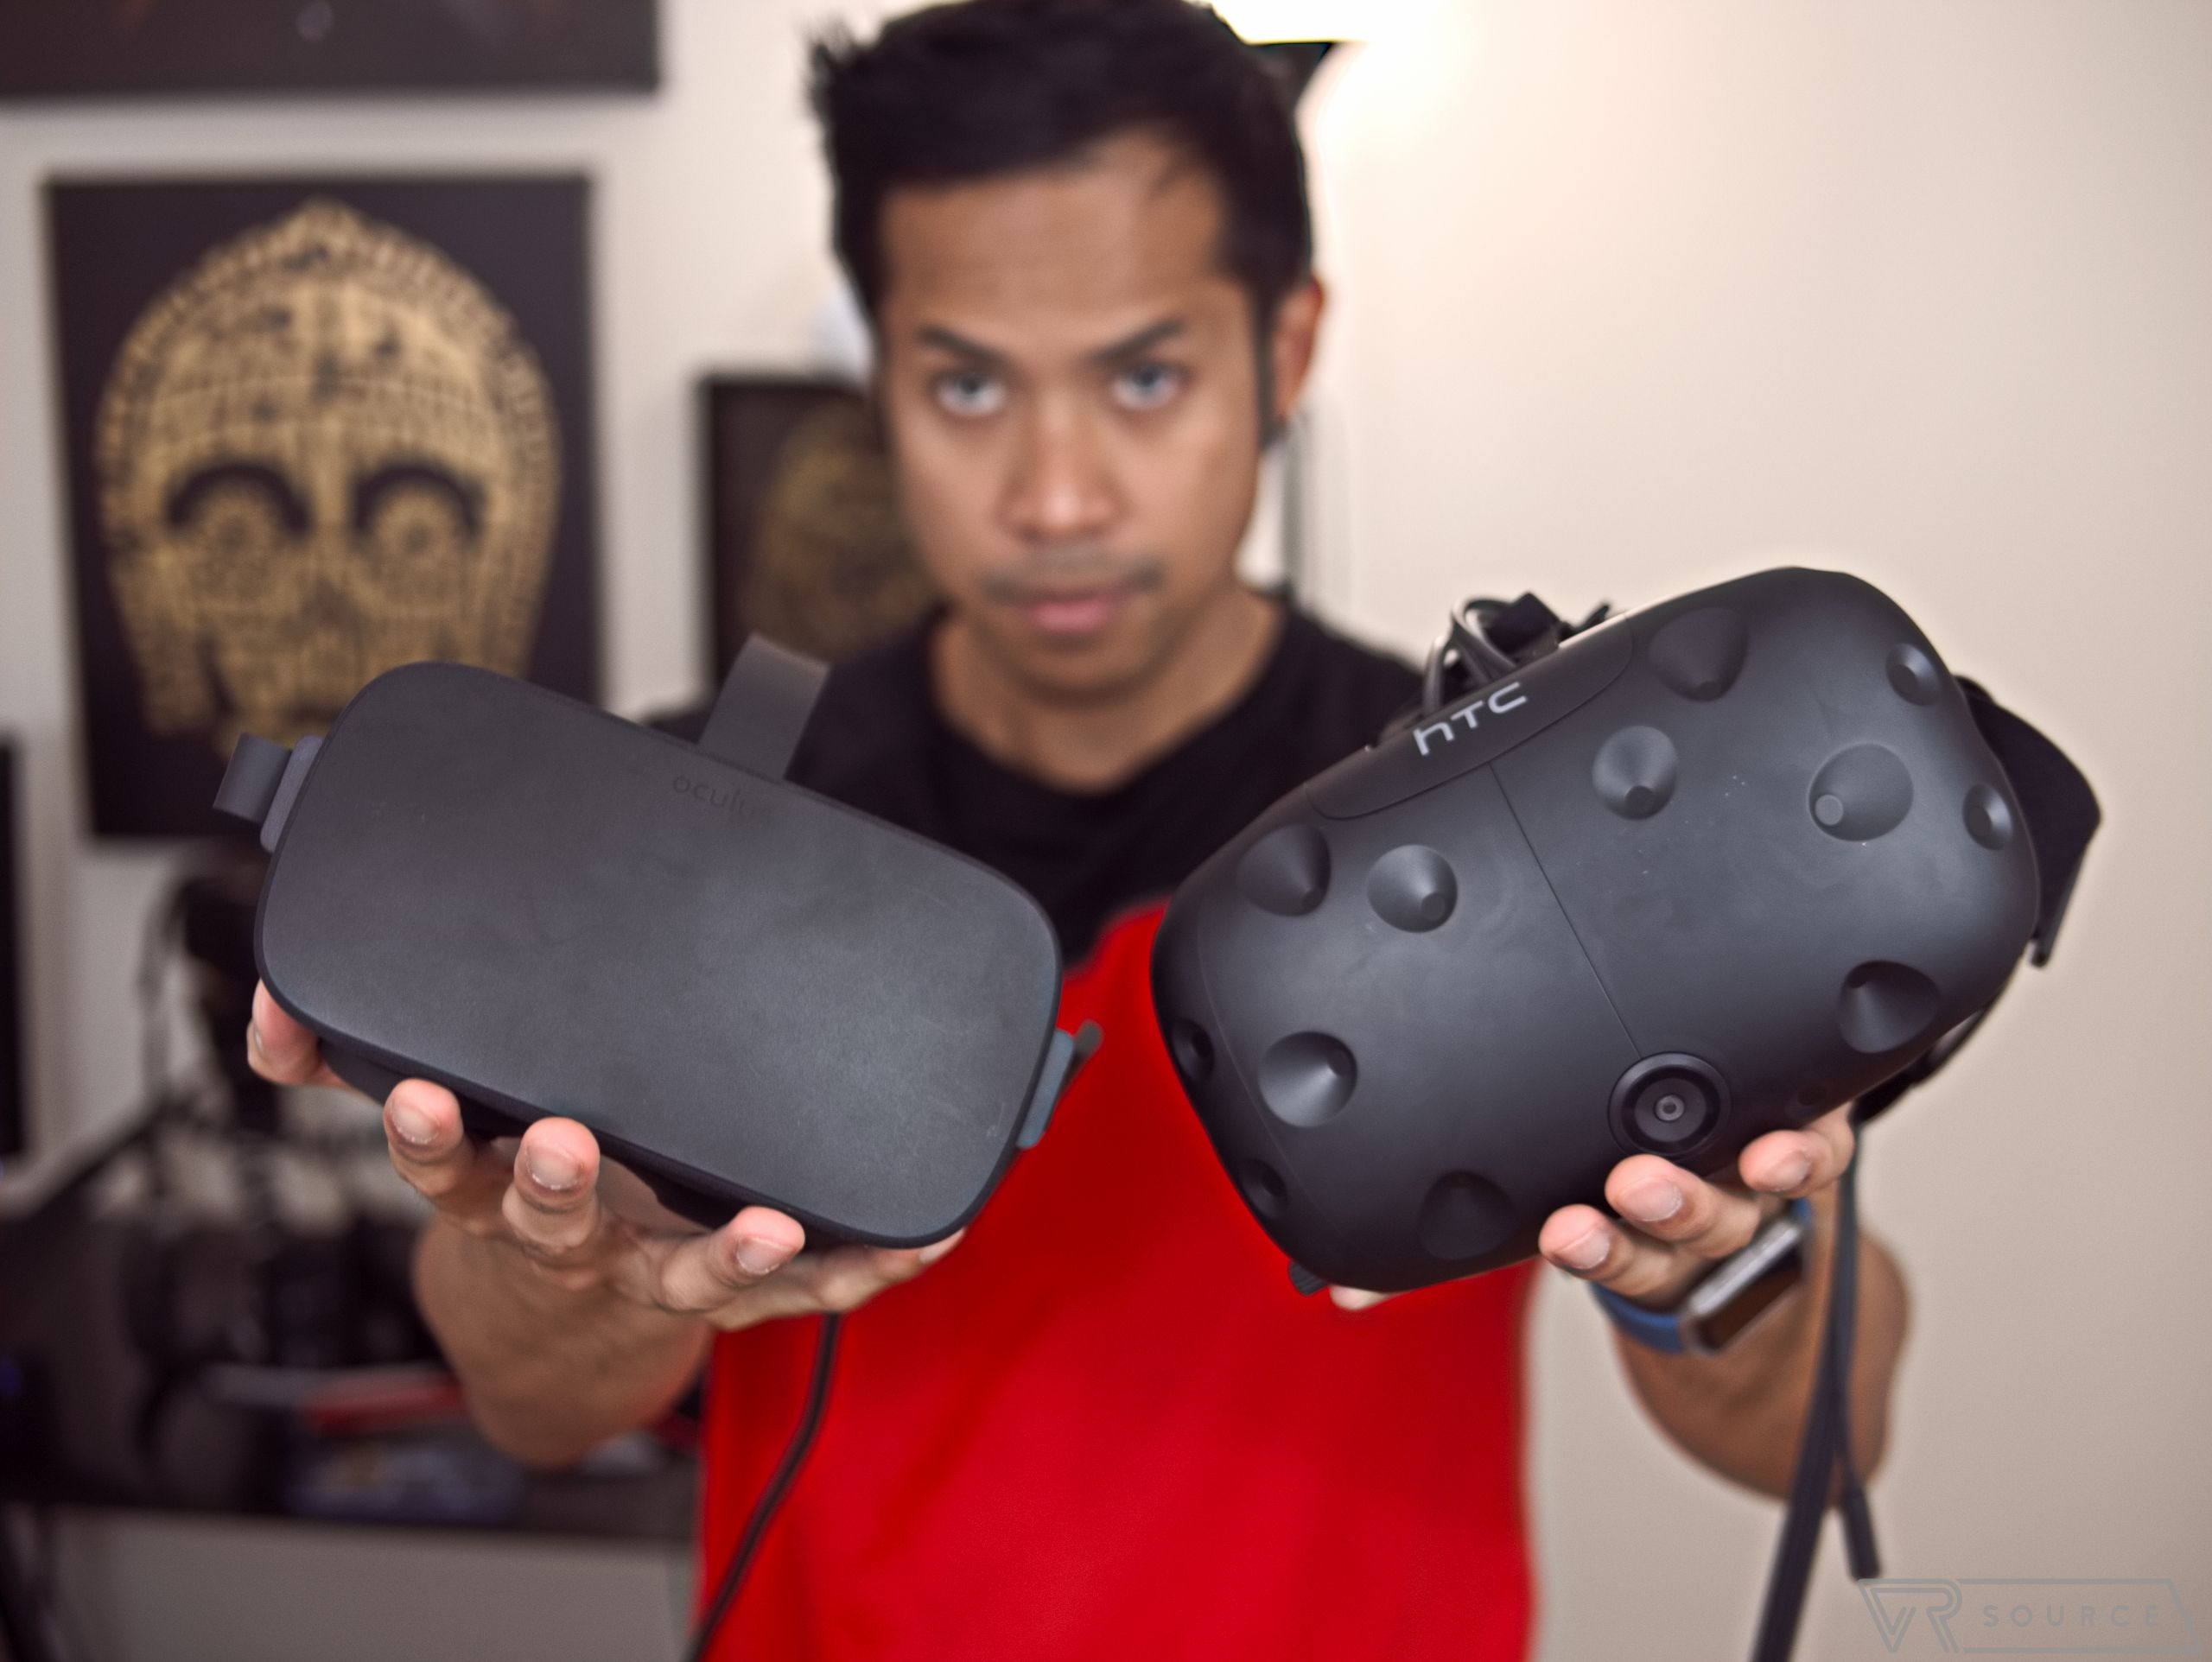 5 annoying design quirks of current VR headsets 5